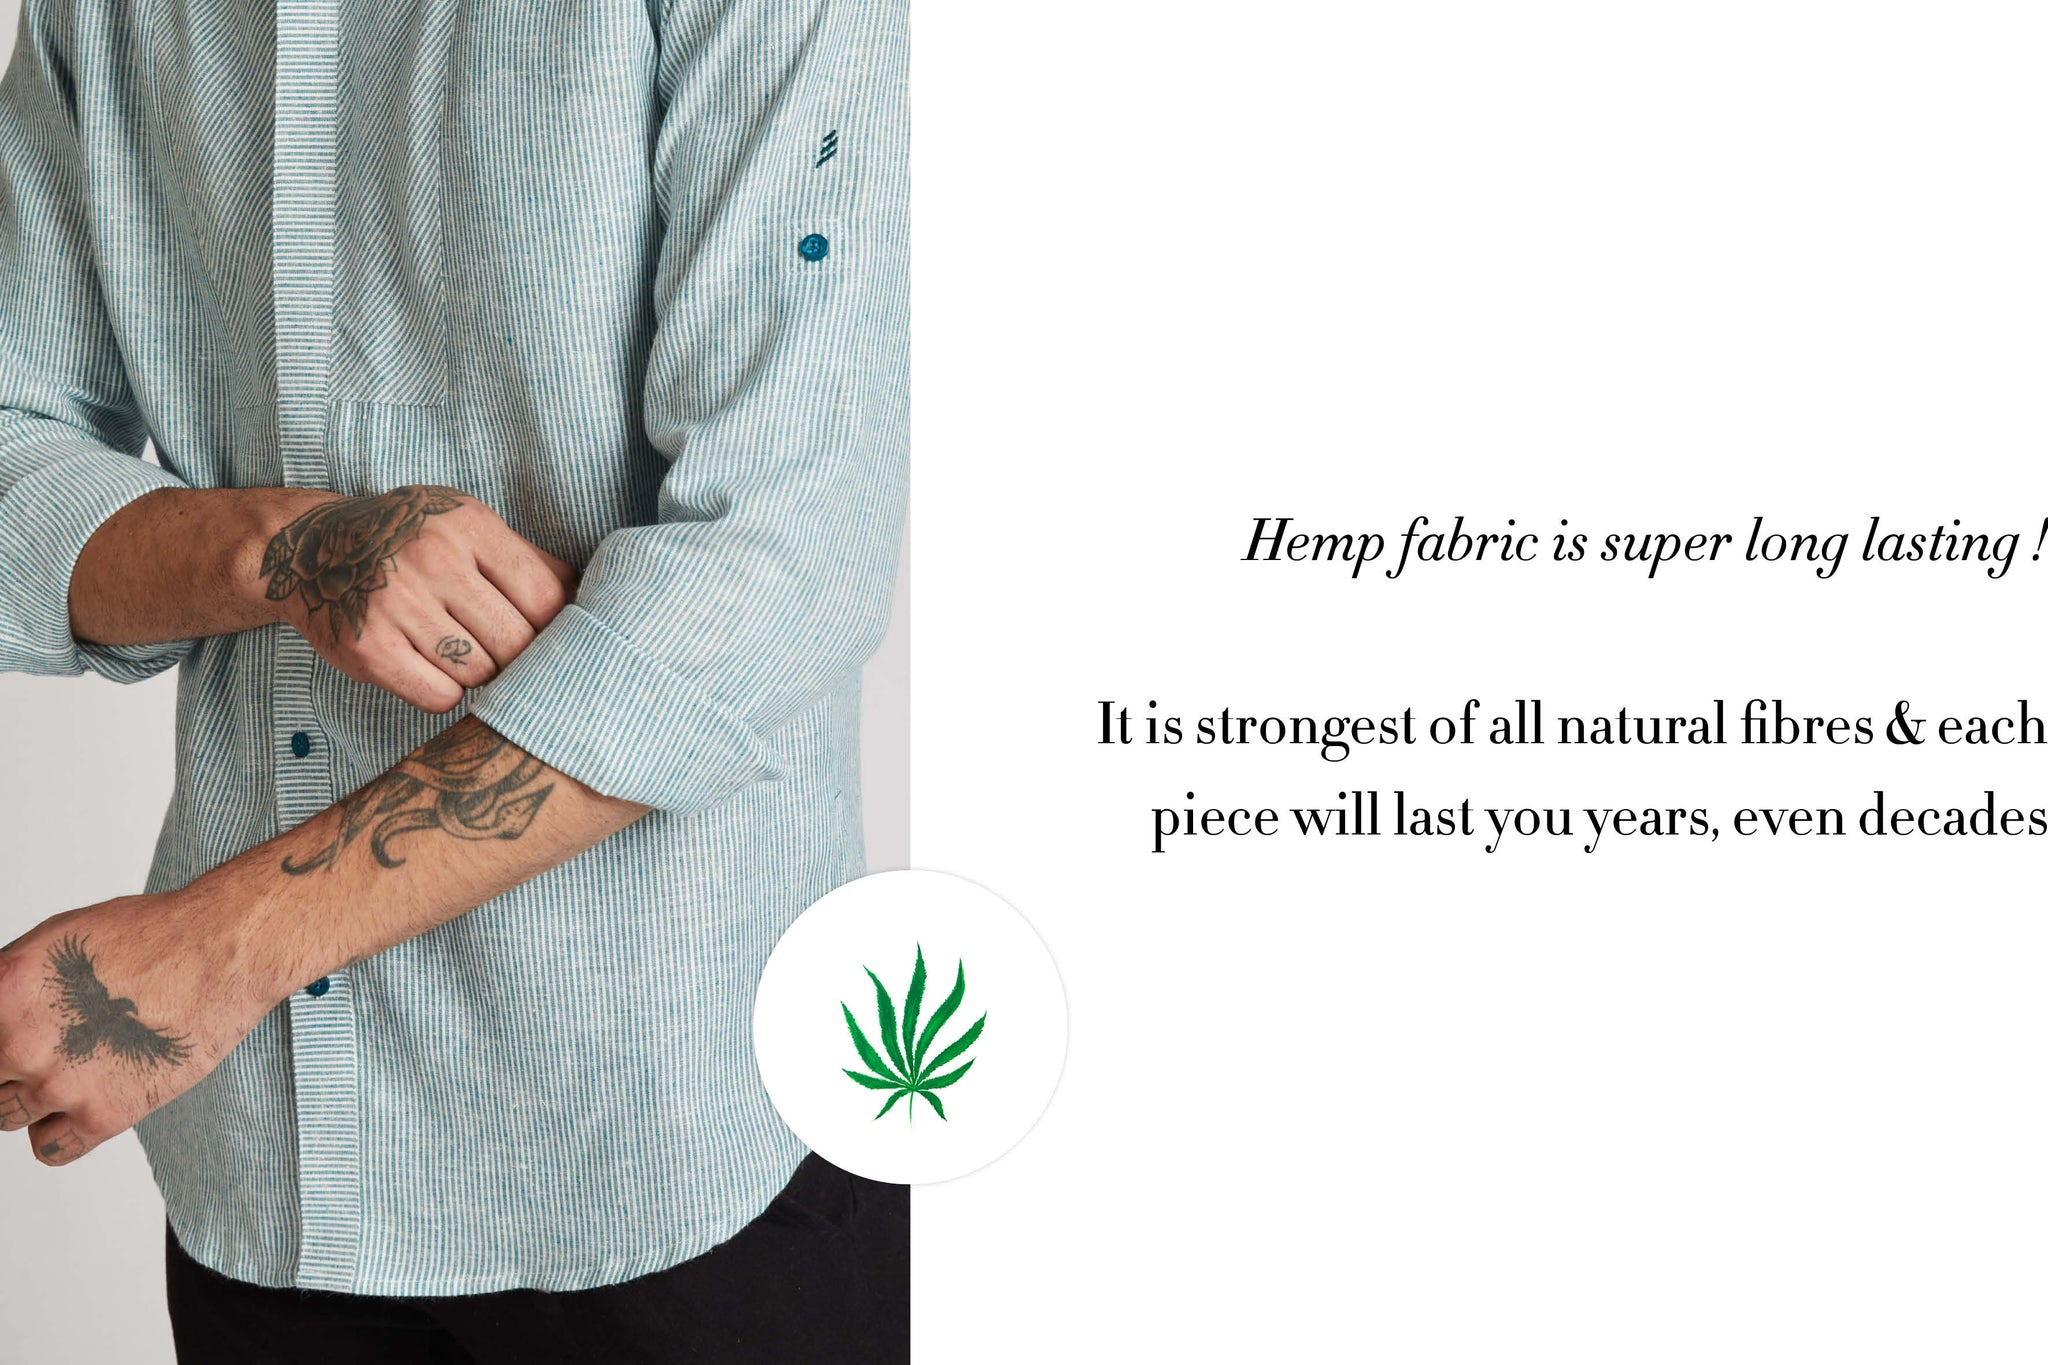 Hemp Fabric is super long lasting . Its the strongest of all natural fibres and each piece will last you years  , even decades